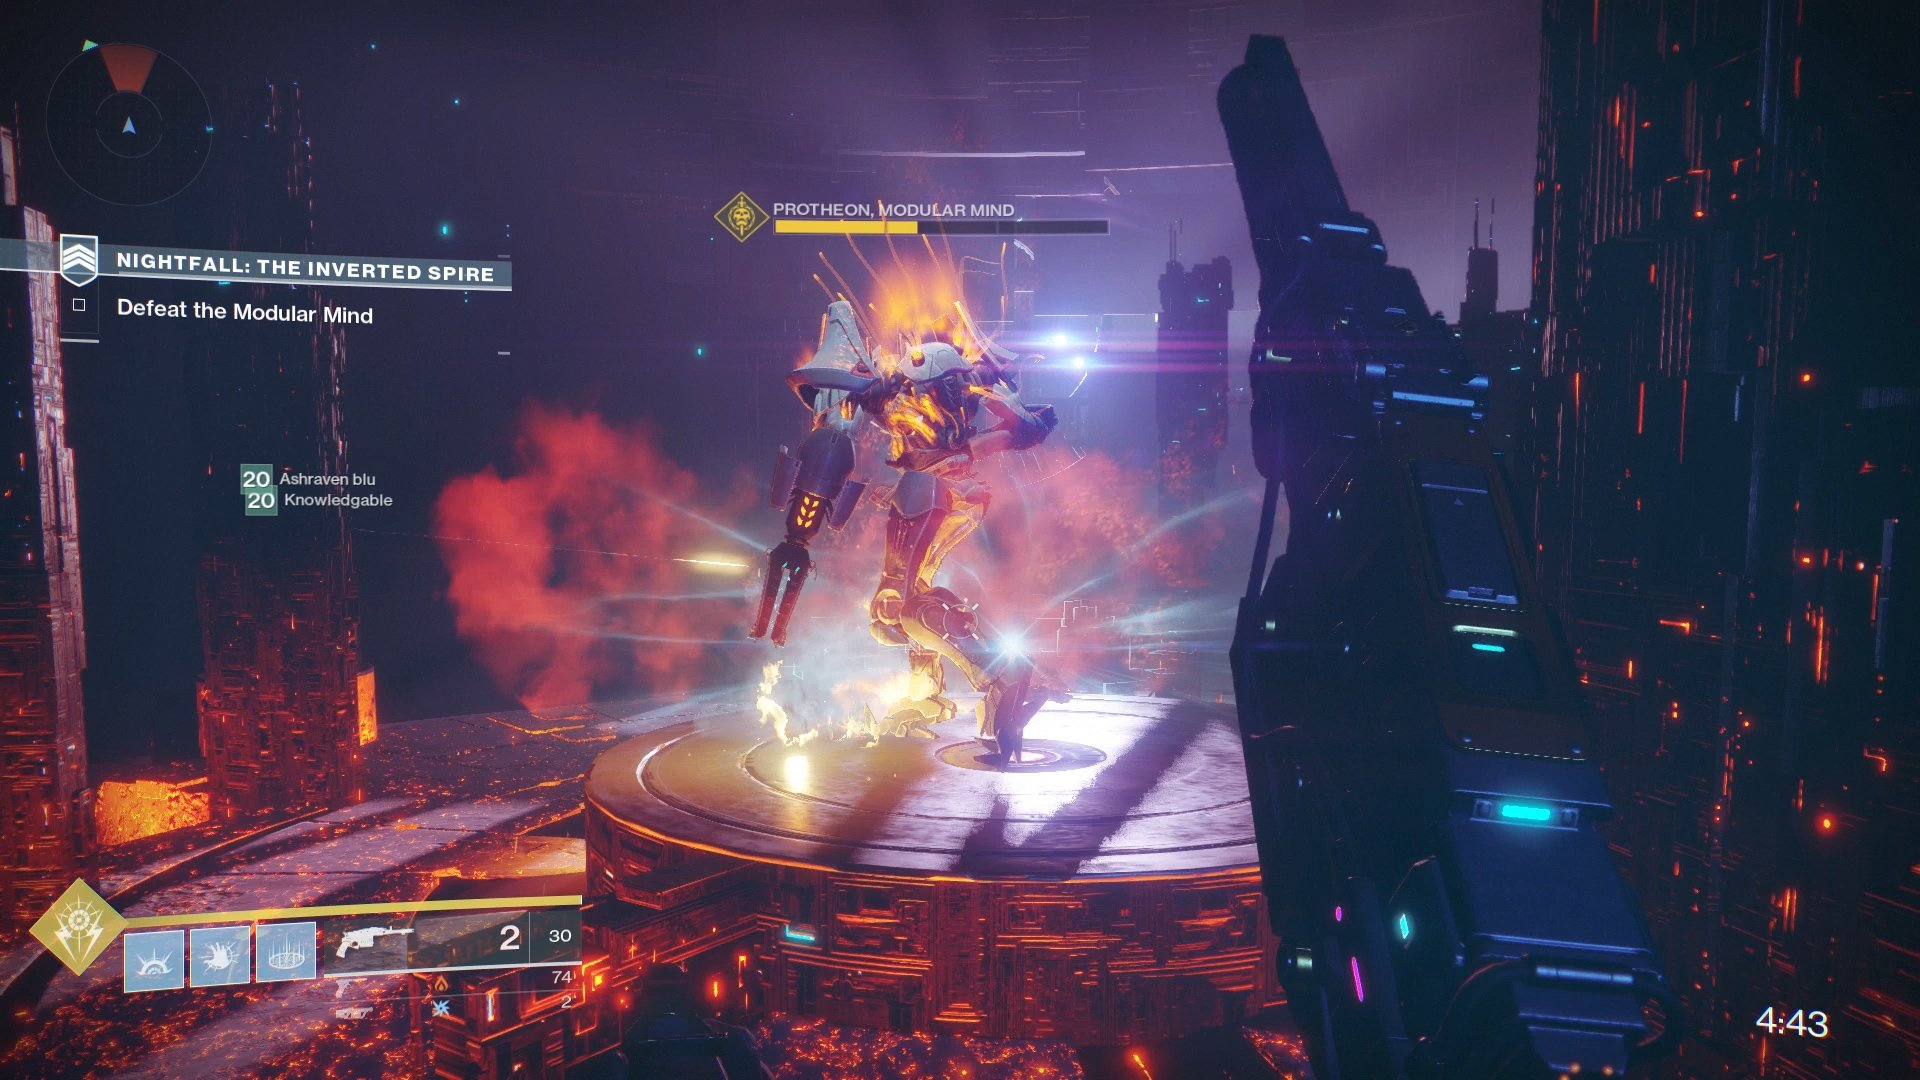 Standing on the pillars during the boss' second phase will help to complete the Nightfall Challenge.